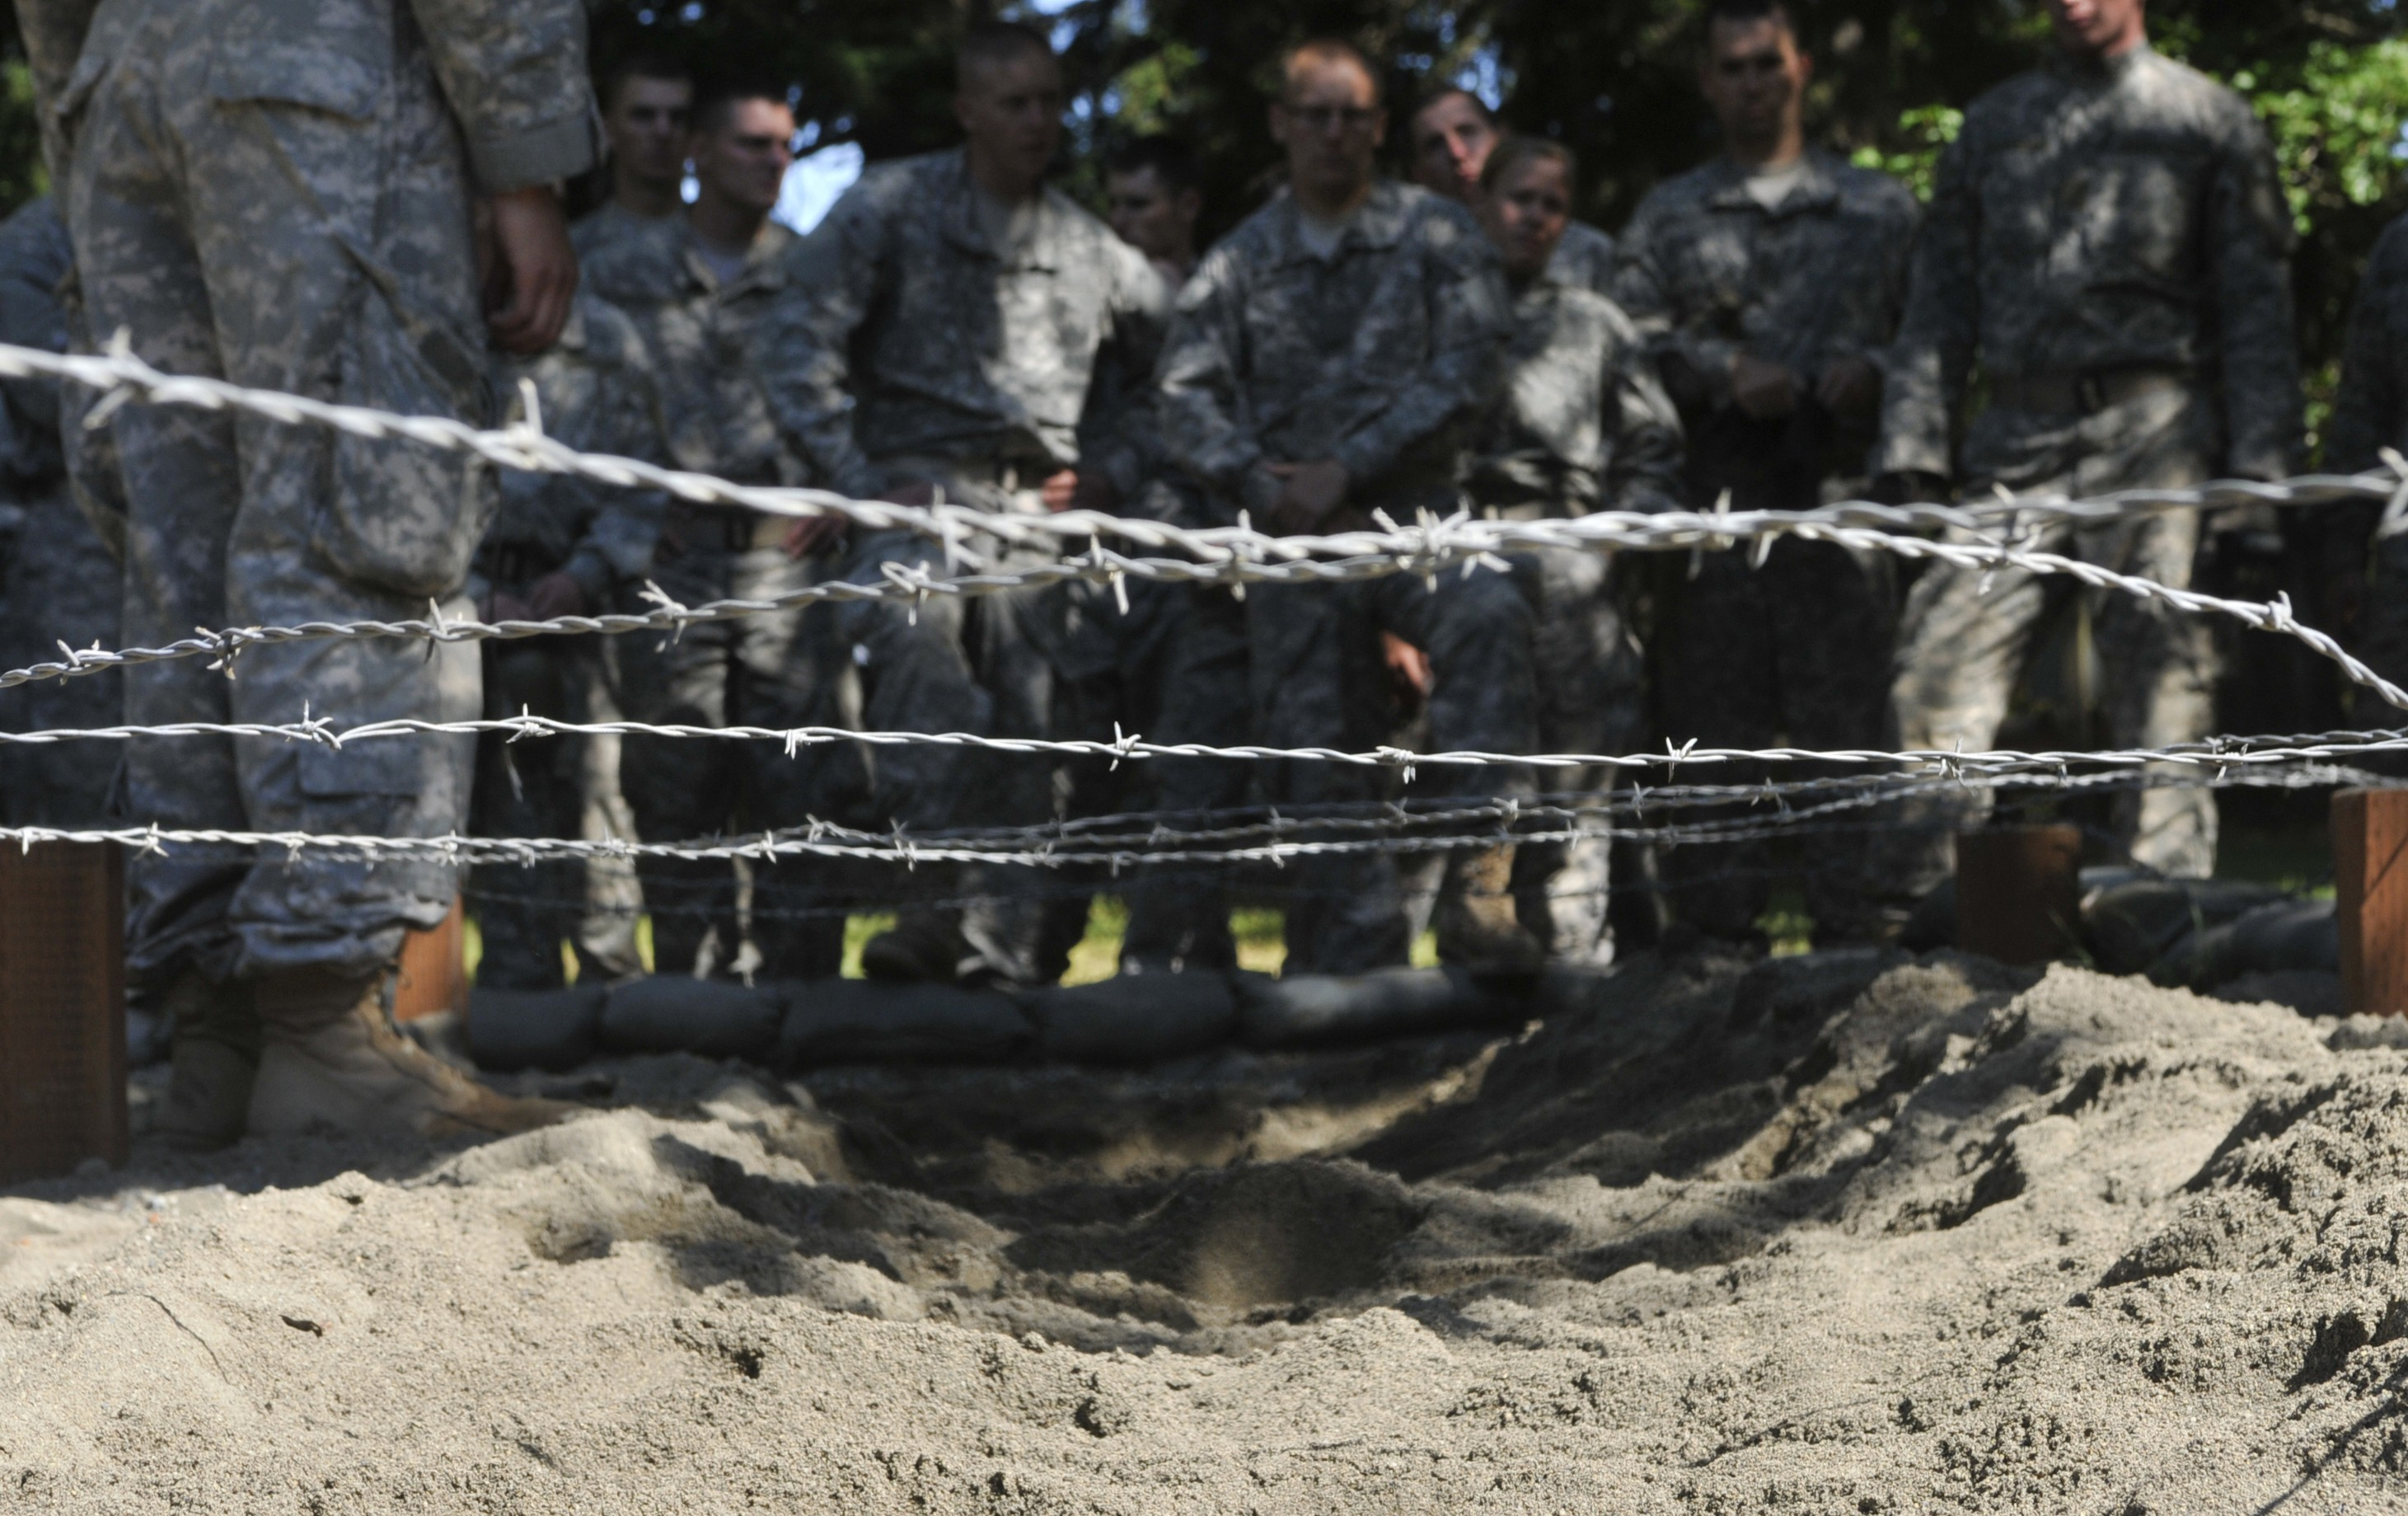 Army Cadets overcome fear at obstacle course | Article | The United ...